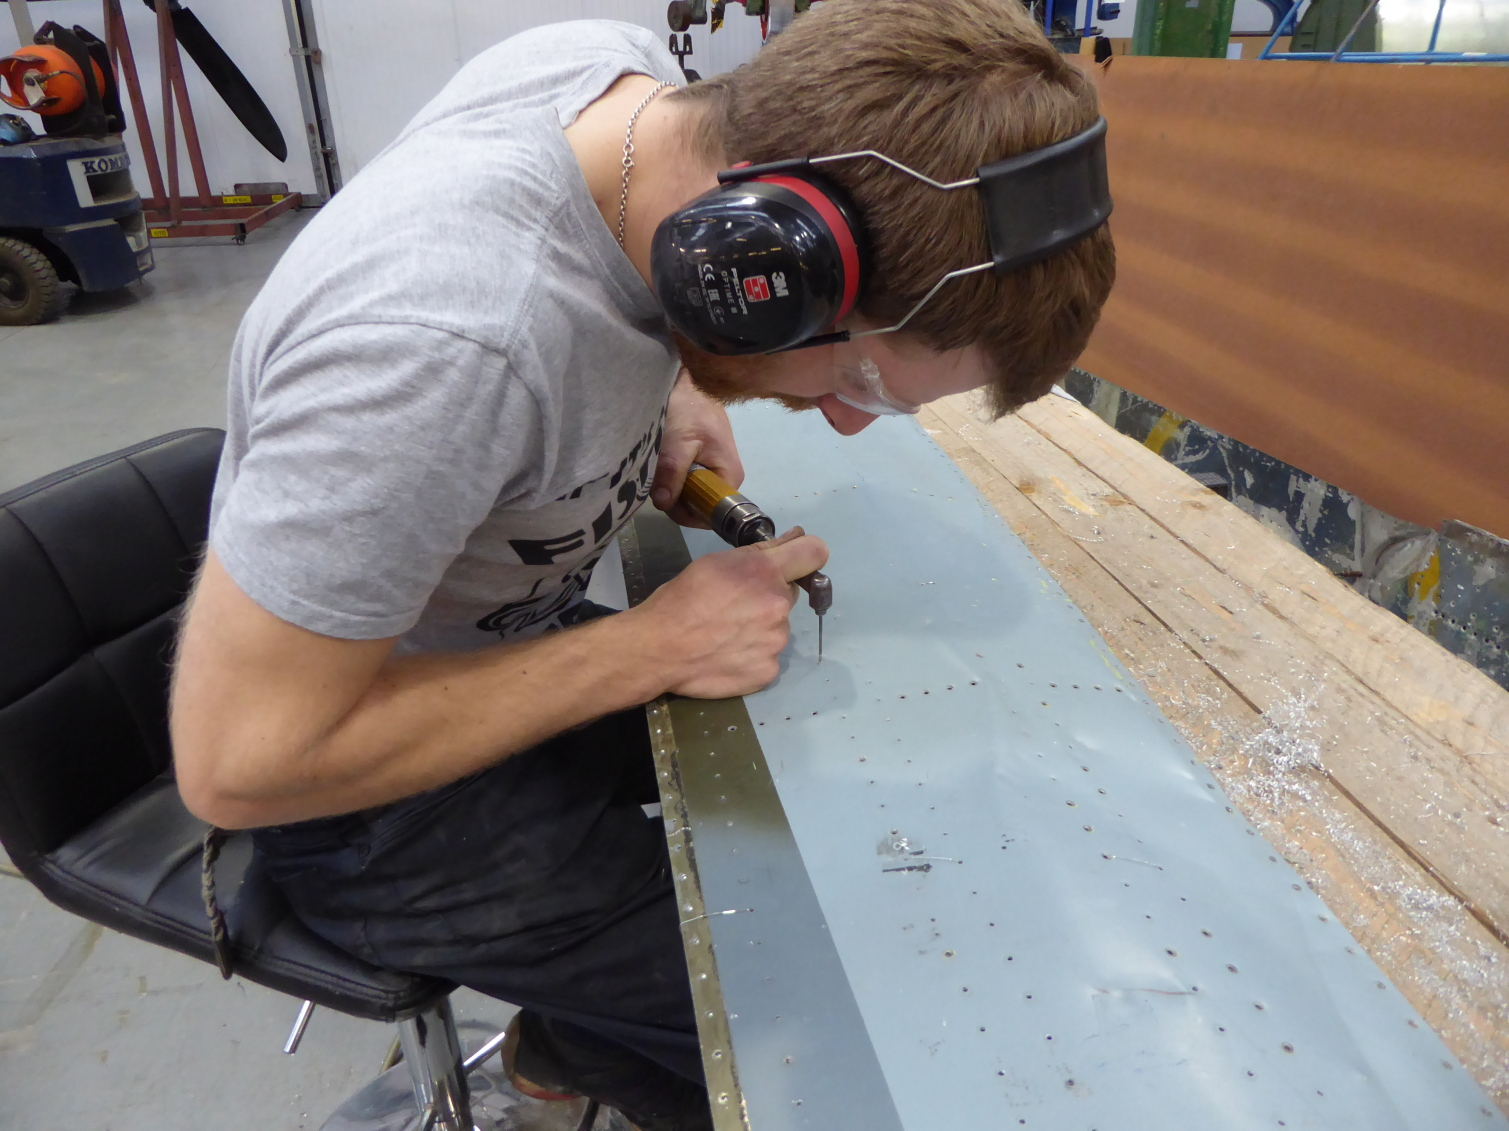 Drilling the rivets